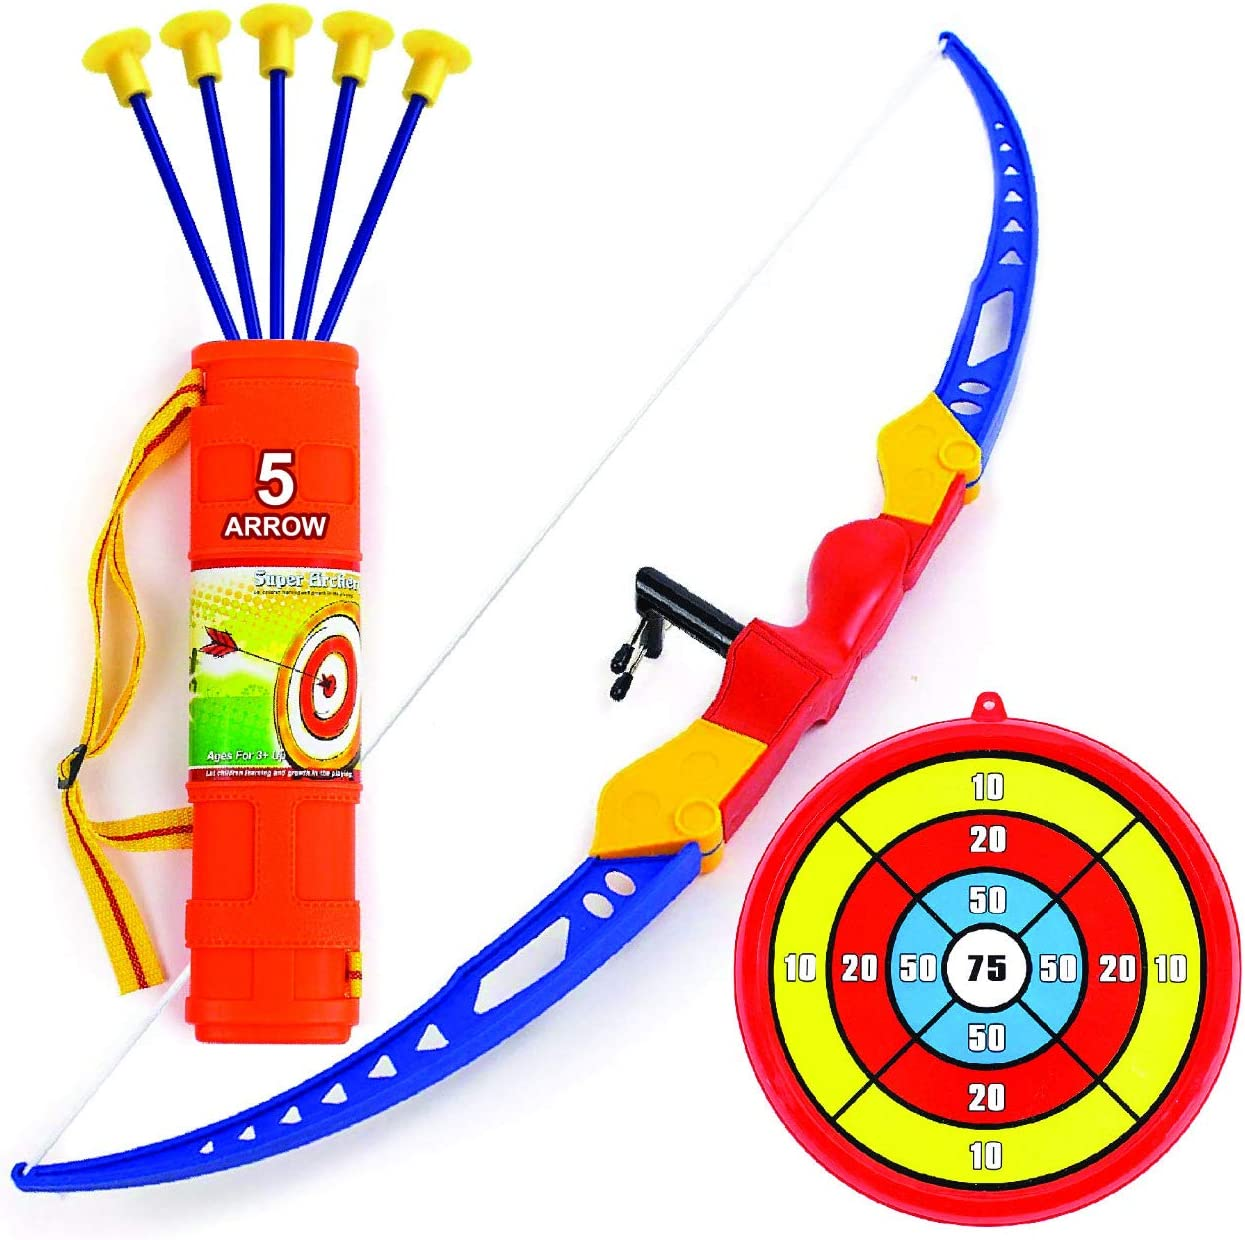 Amazon Com Toysery Bow And Arrow Set For Kids Archery Toy With Recurve Bow With 5 Suction Cup Arrows Target Stand And Quiver Hunting Practice Safe Outdoor Play Toys For Children Most arrows are able to be used to trade and have different values. toysery bow and arrow set for kids archery toy with recurve bow with 5 suction cup arrows target stand and quiver hunting practice safe outdoor